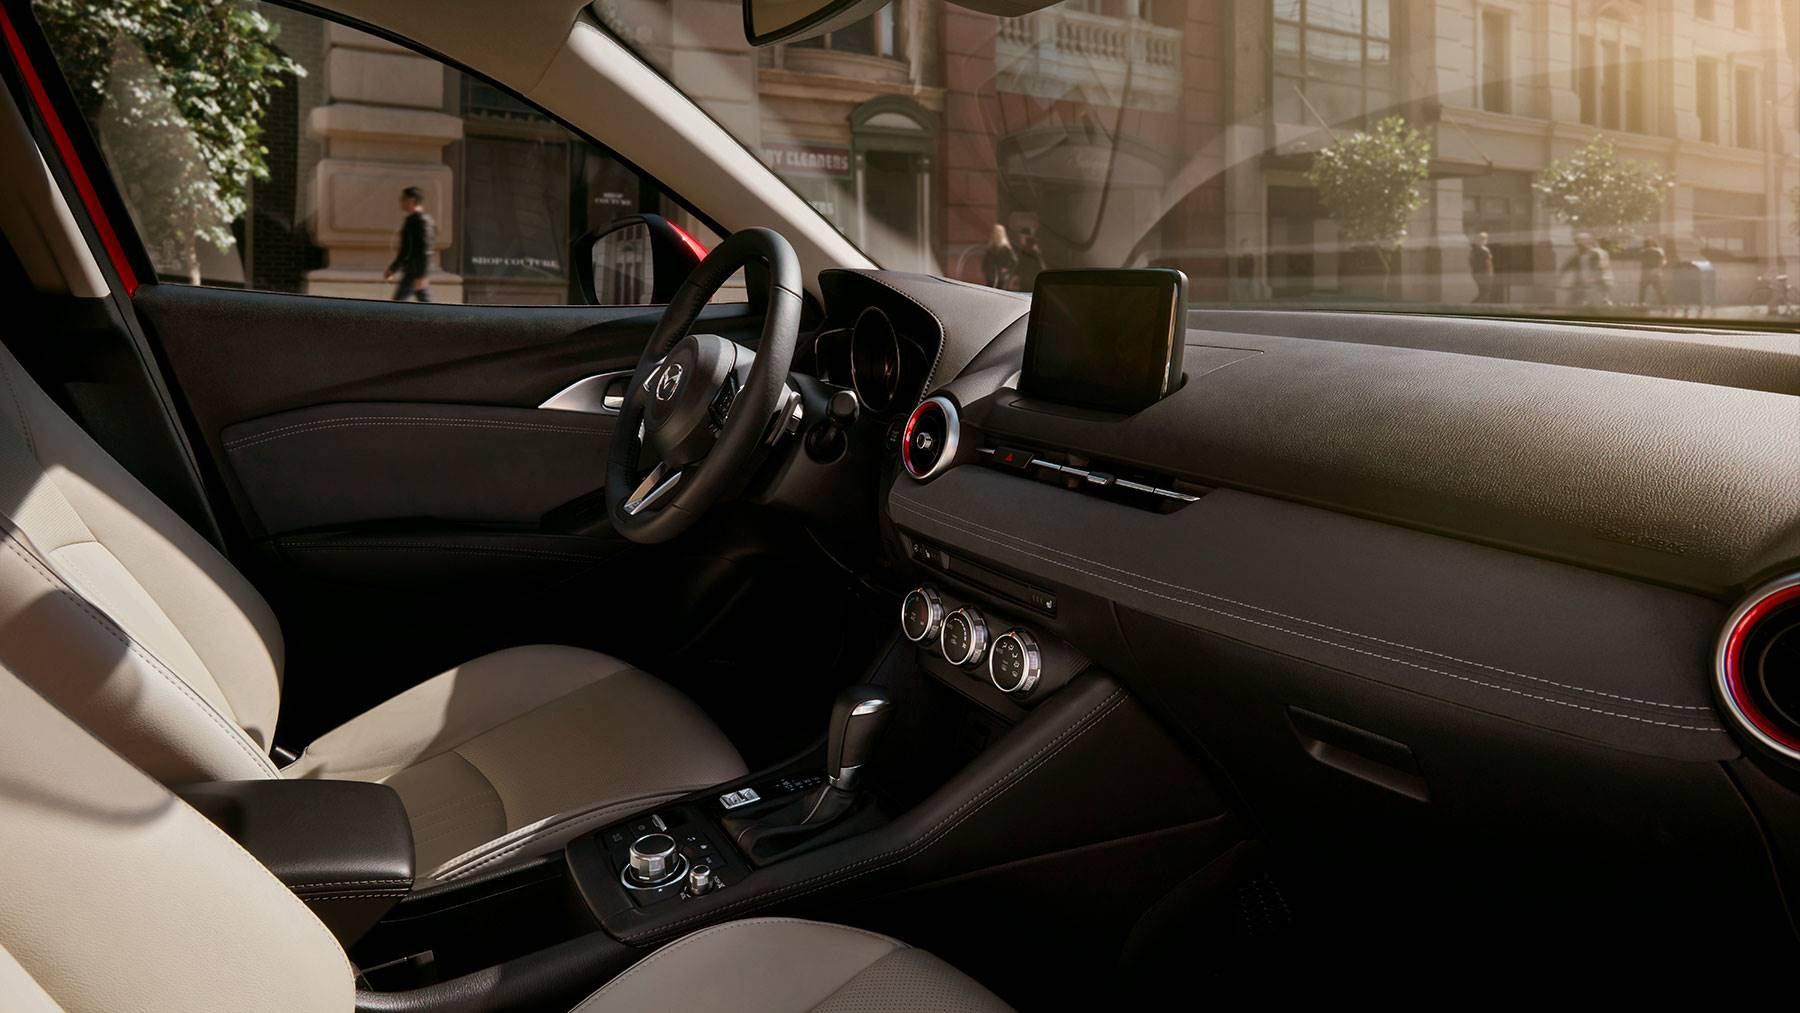 Cozy and Stylish Seating in the 2019 Mazda CX-3